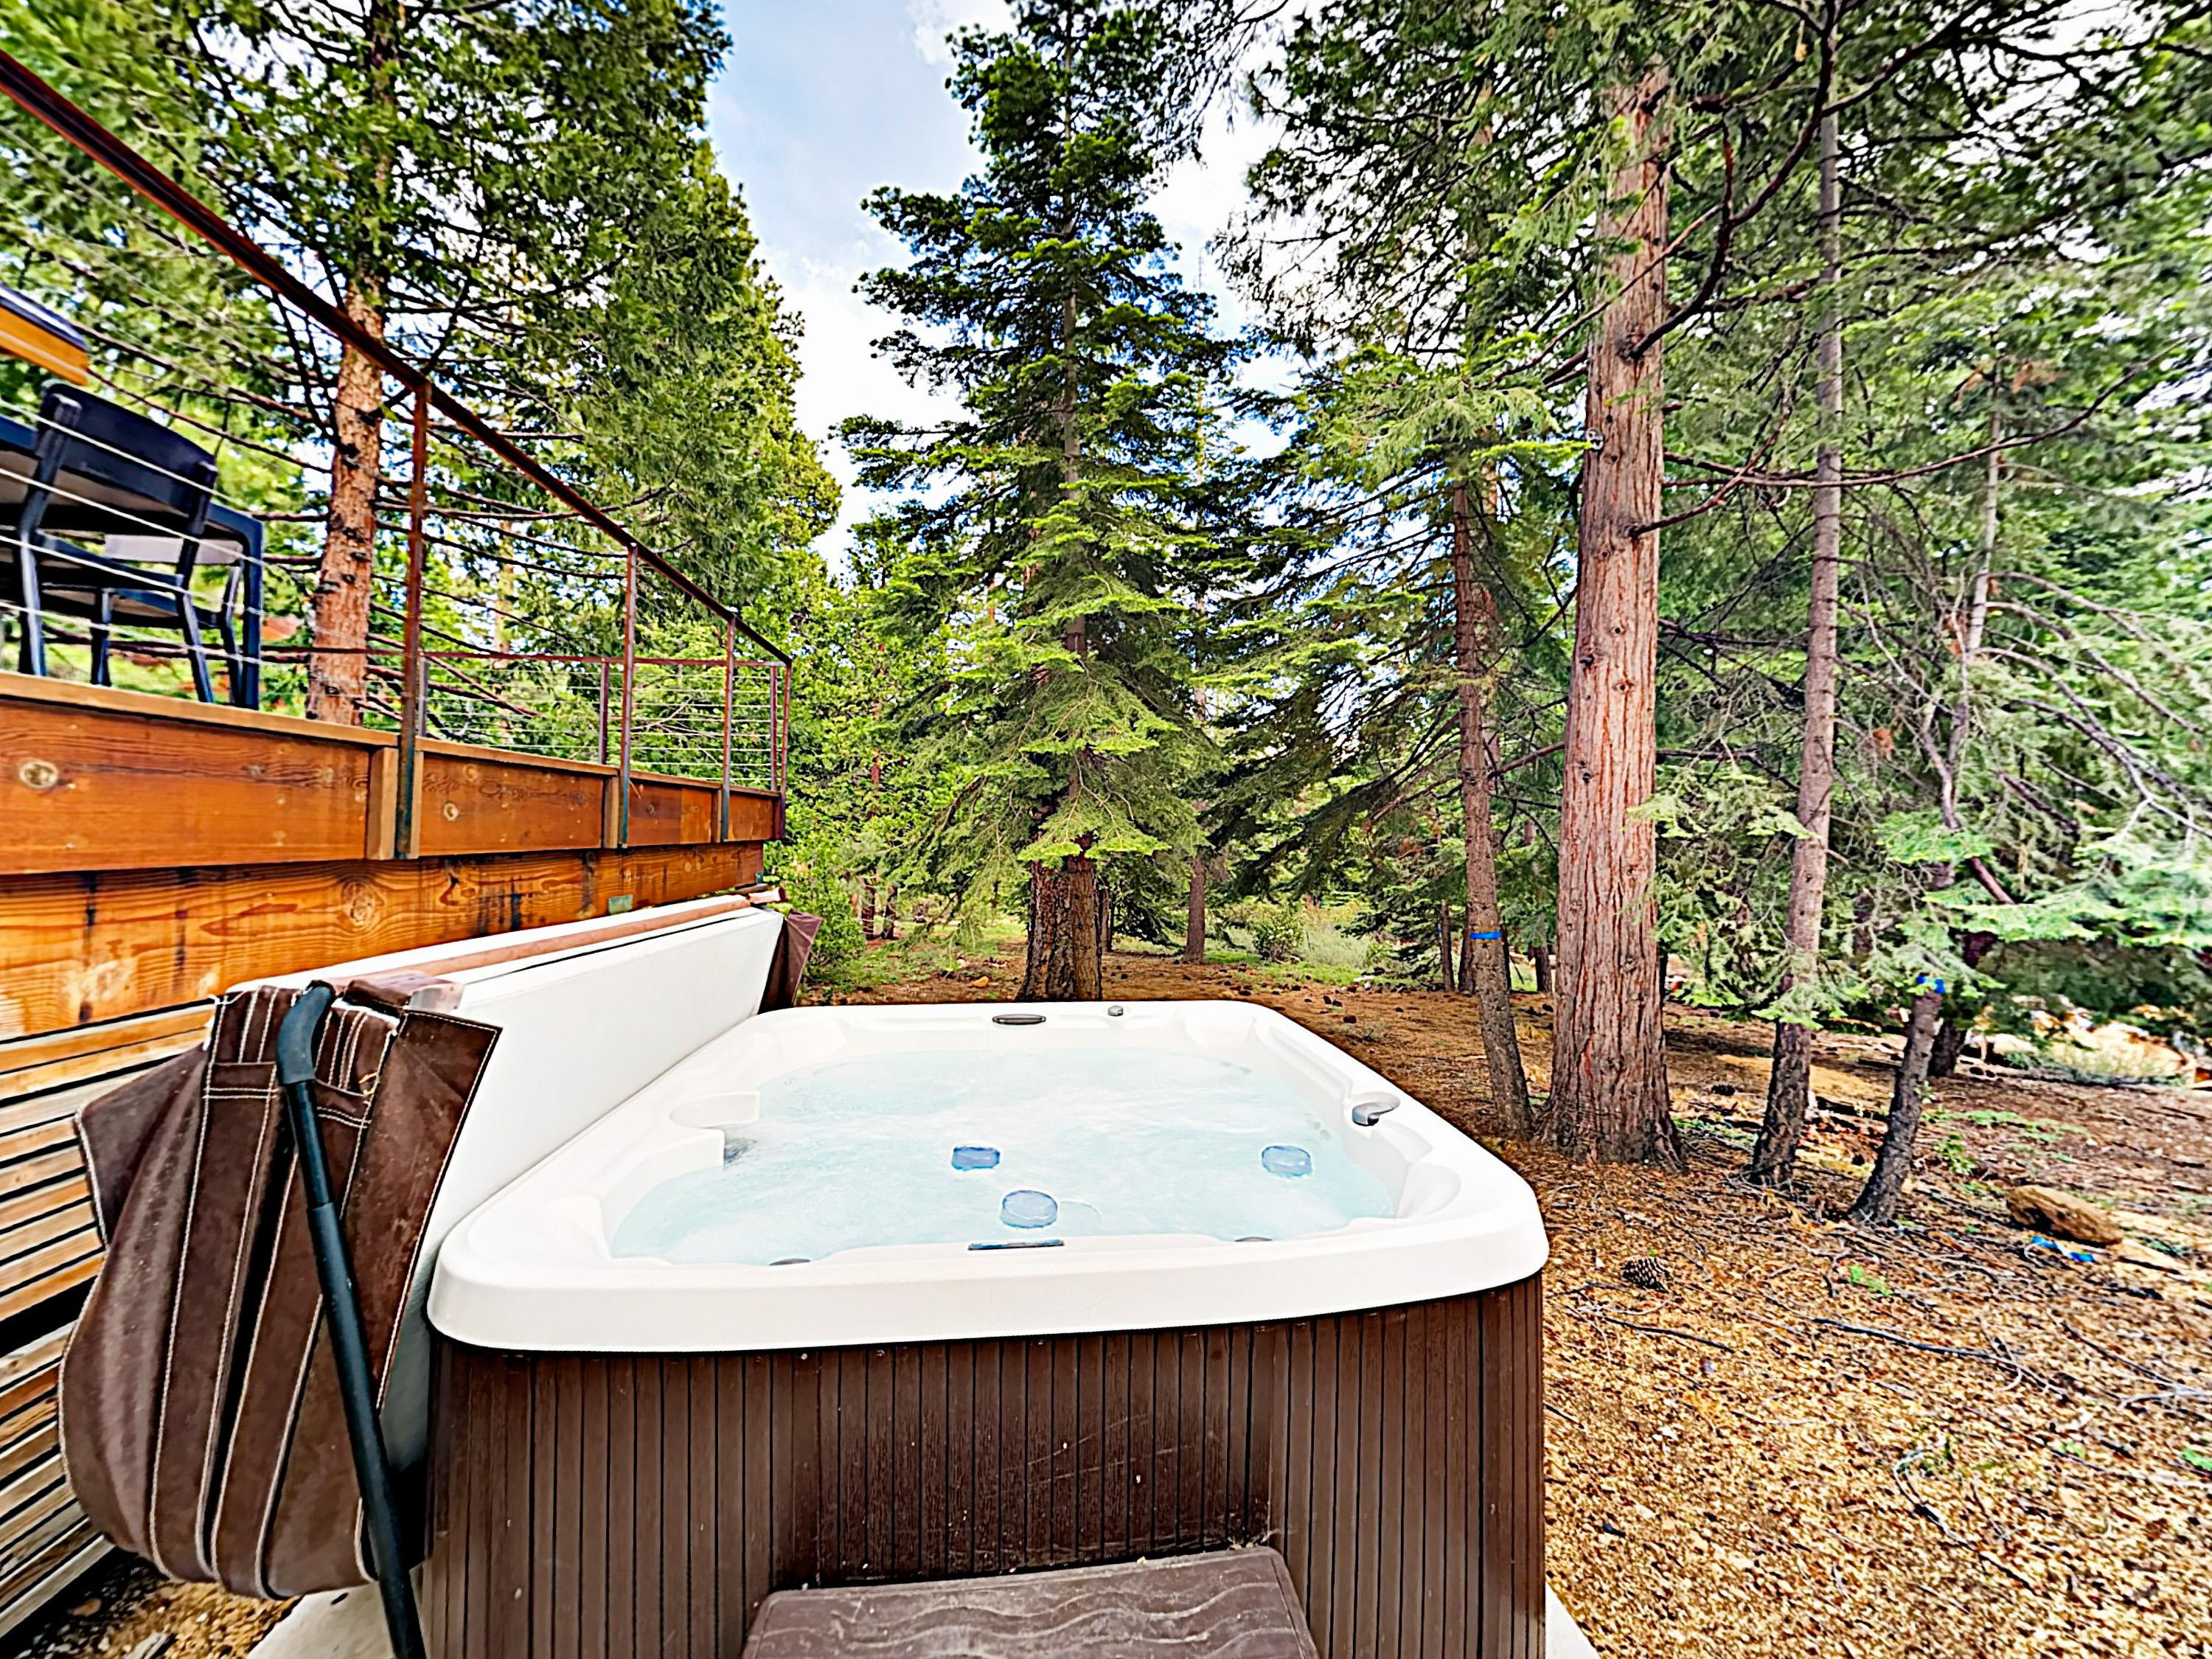 Enjoy wooded views from the privacy of the hot tub.